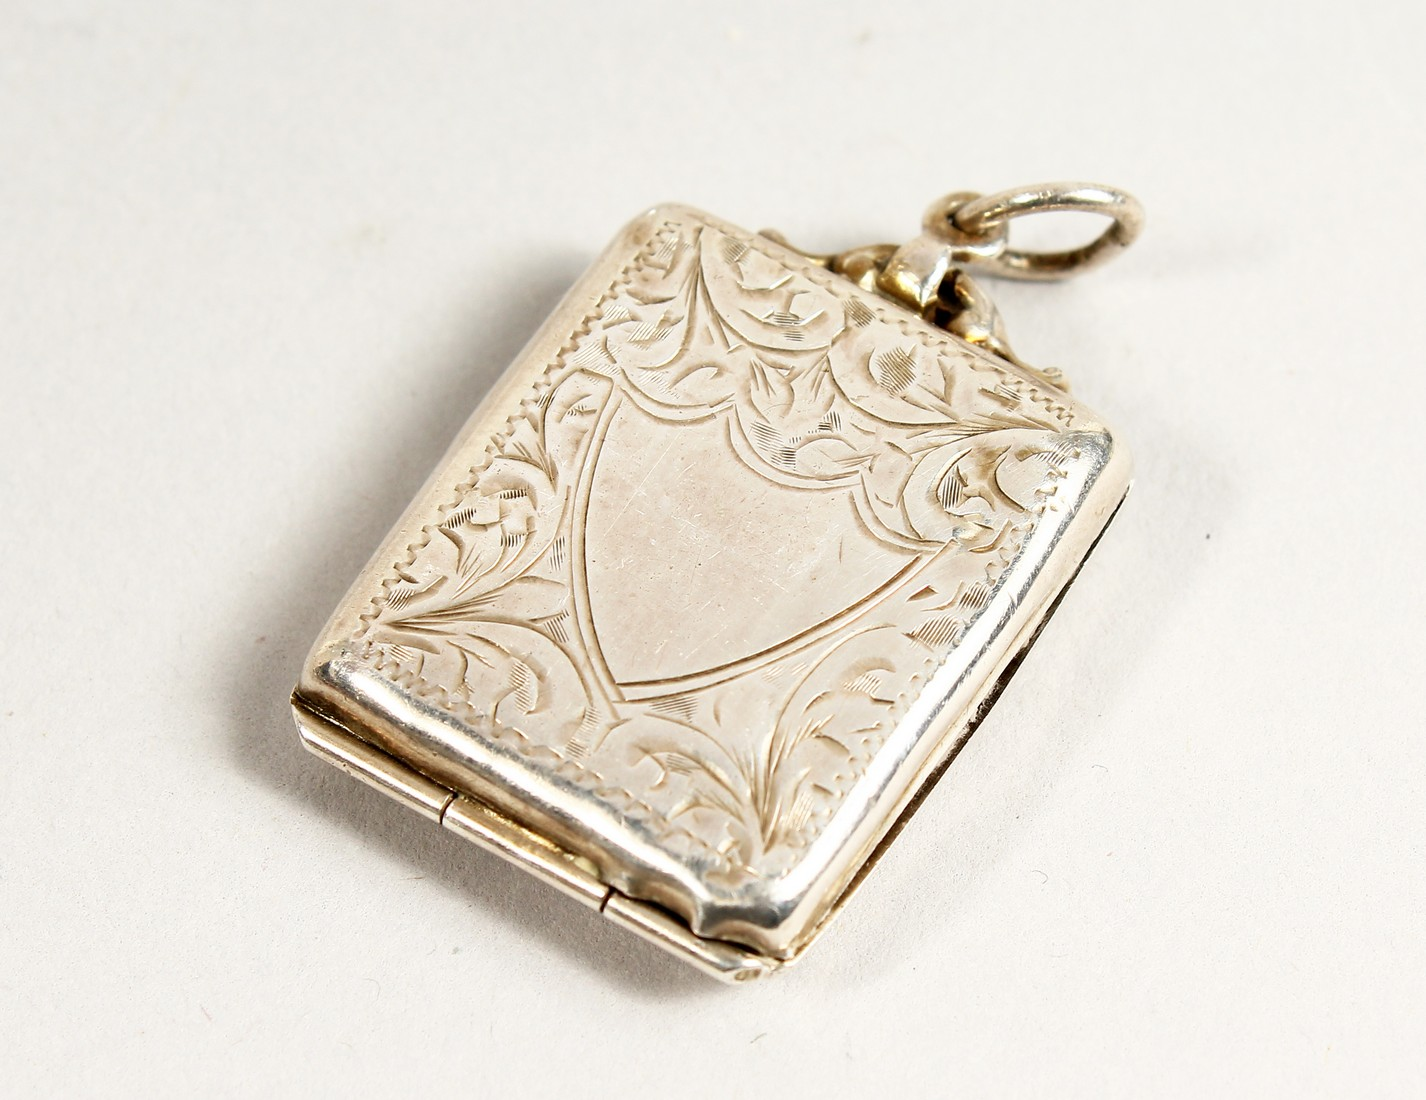 AN ENGRAVED SILVER STAMP HOLDER.